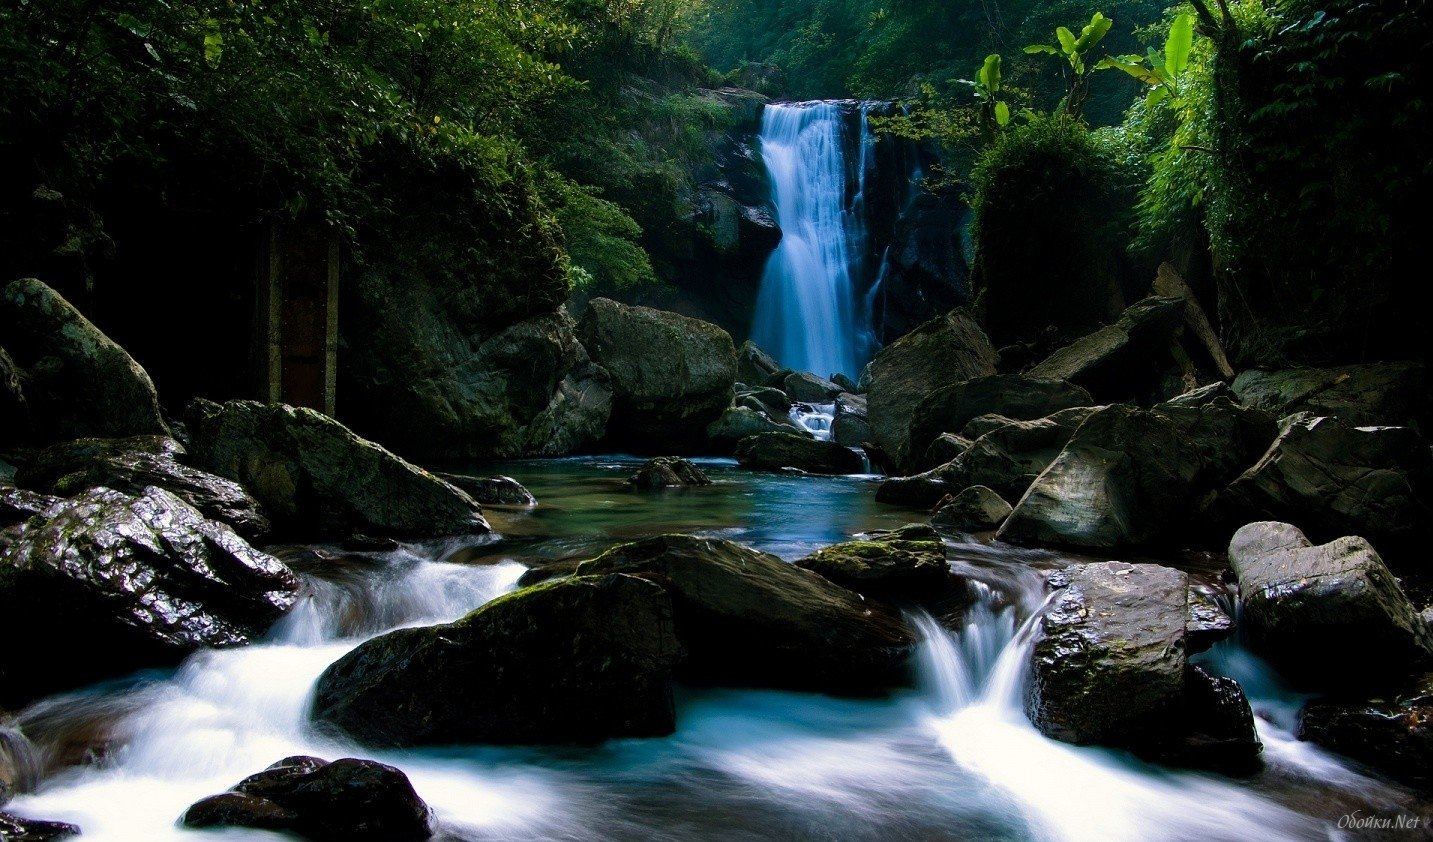 Home Nature The most beautiful waterfall HD Desktop Wallpaper 1433x842